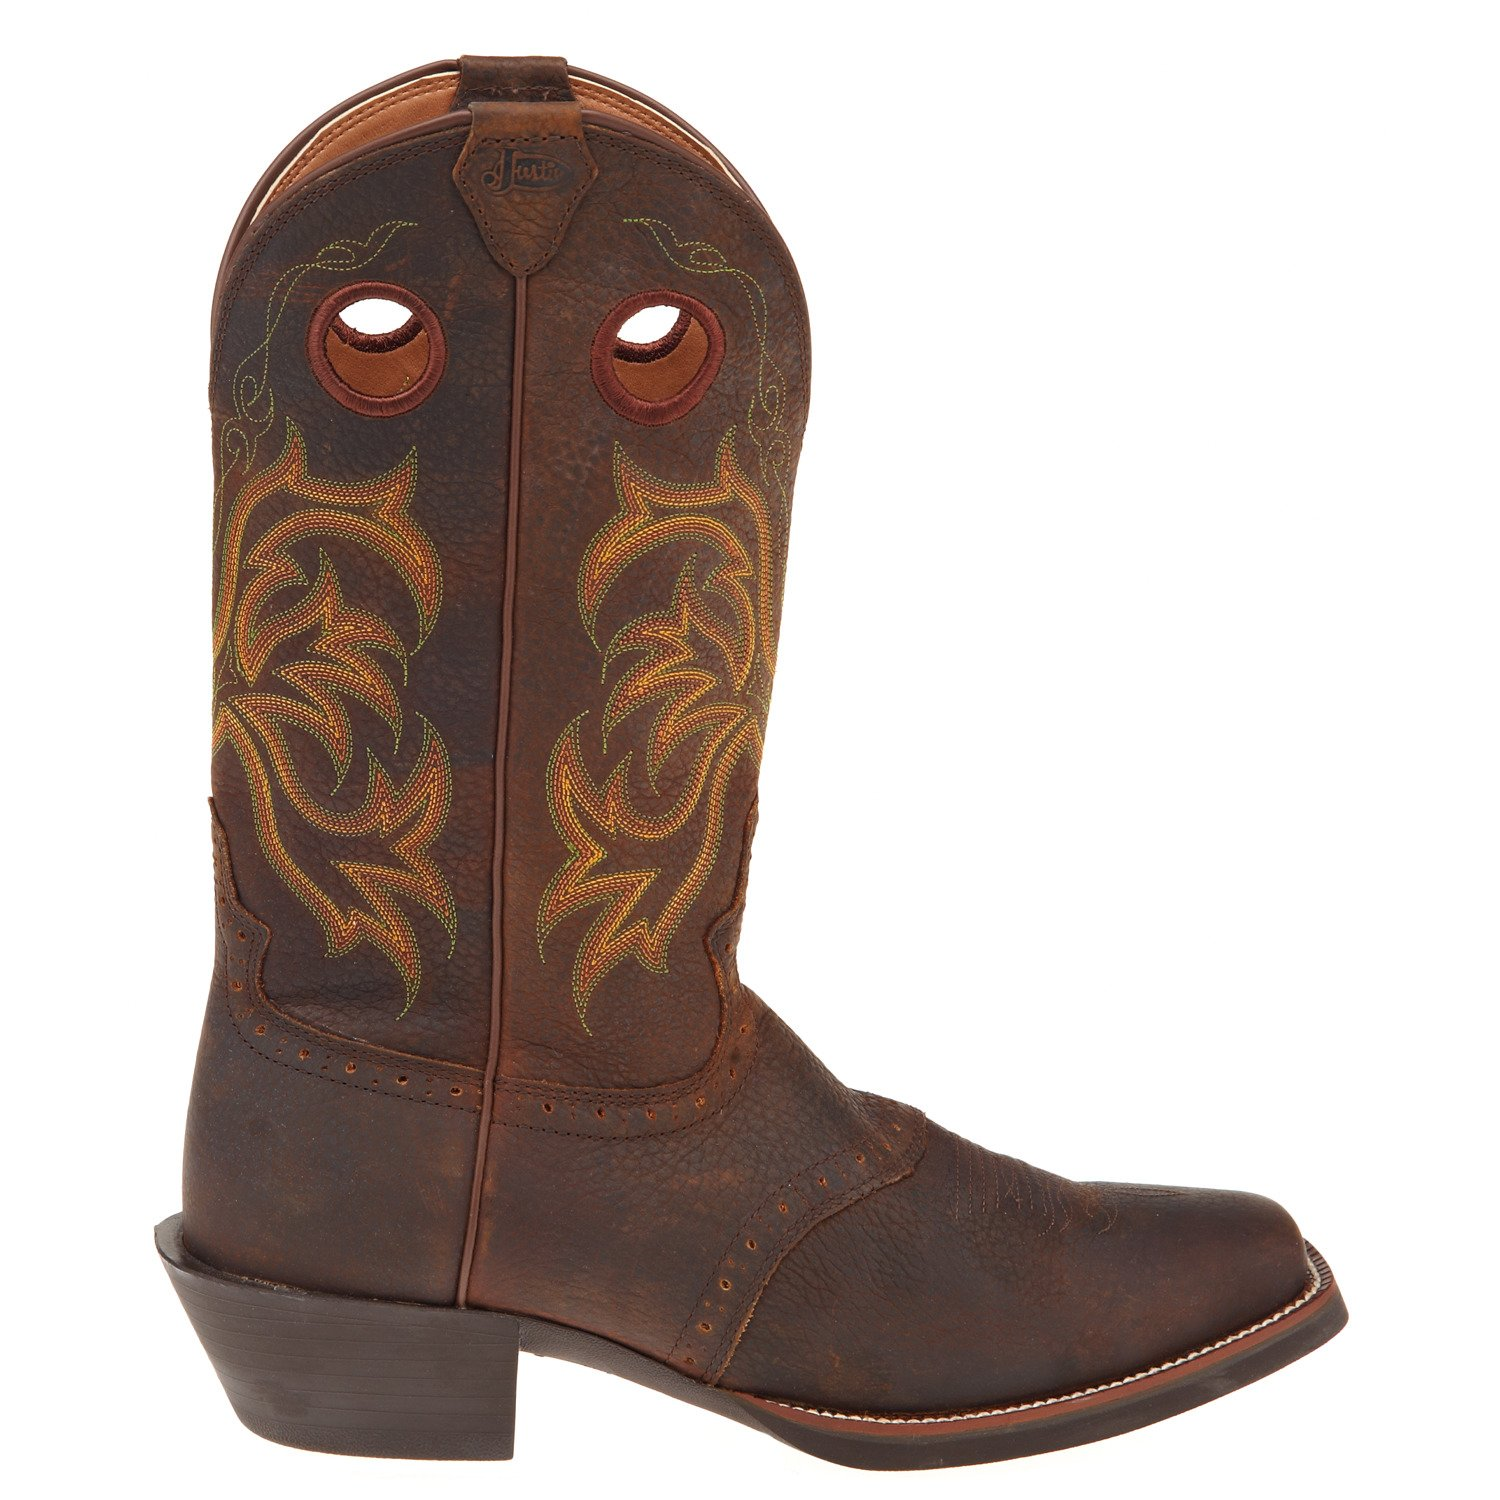 Display product reviews for Justin Men's Stampede Punchy Western Boots This product is currently selected